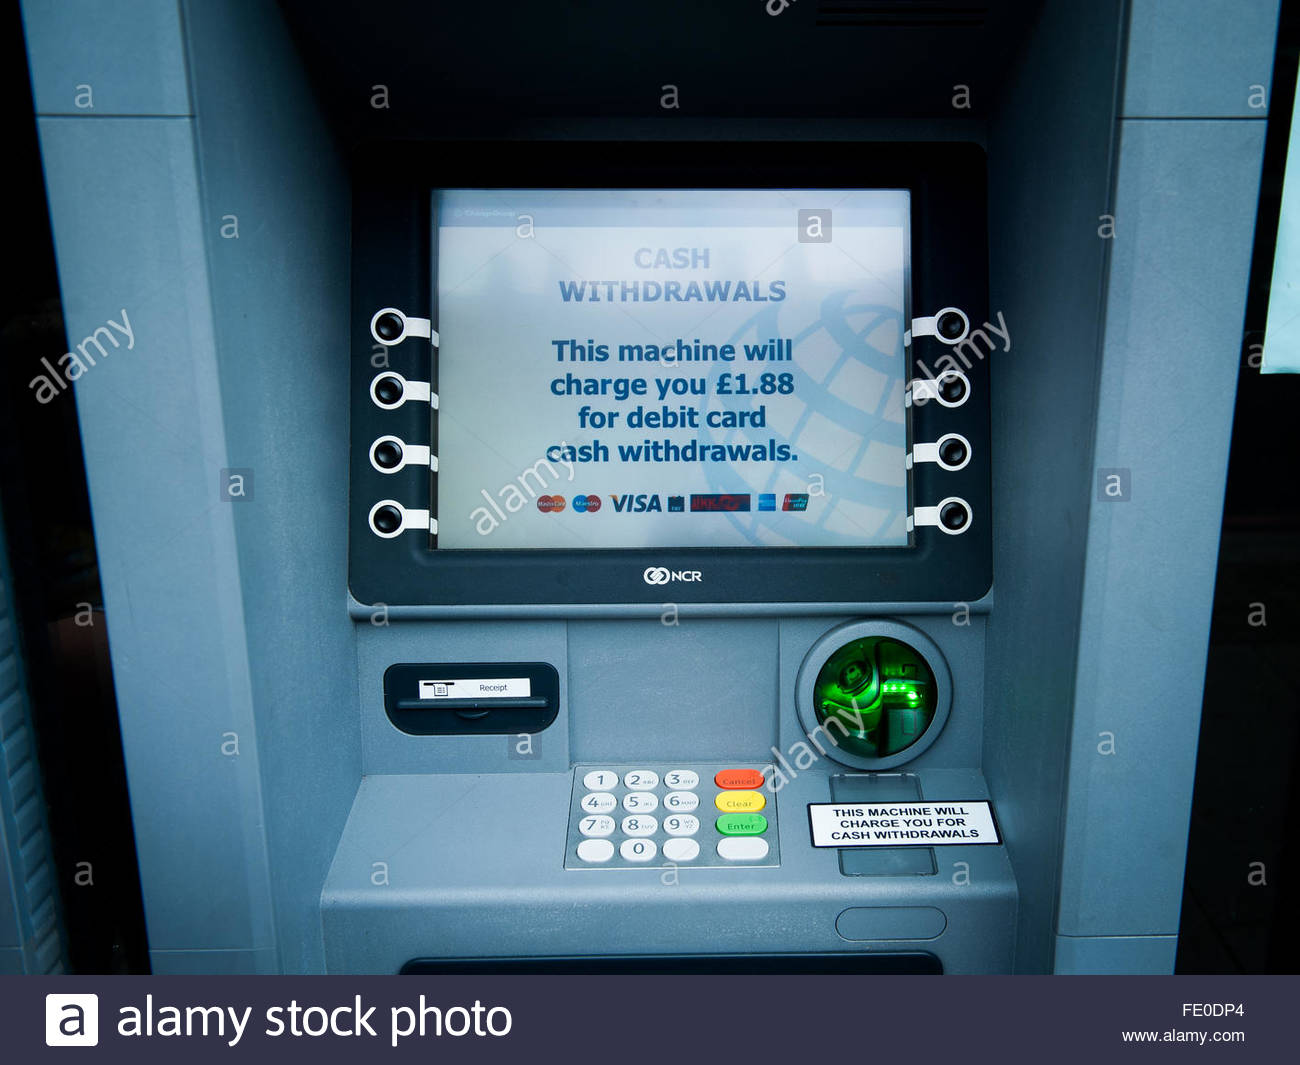 Do You Know About Wells Fargo ATM Fee Charges